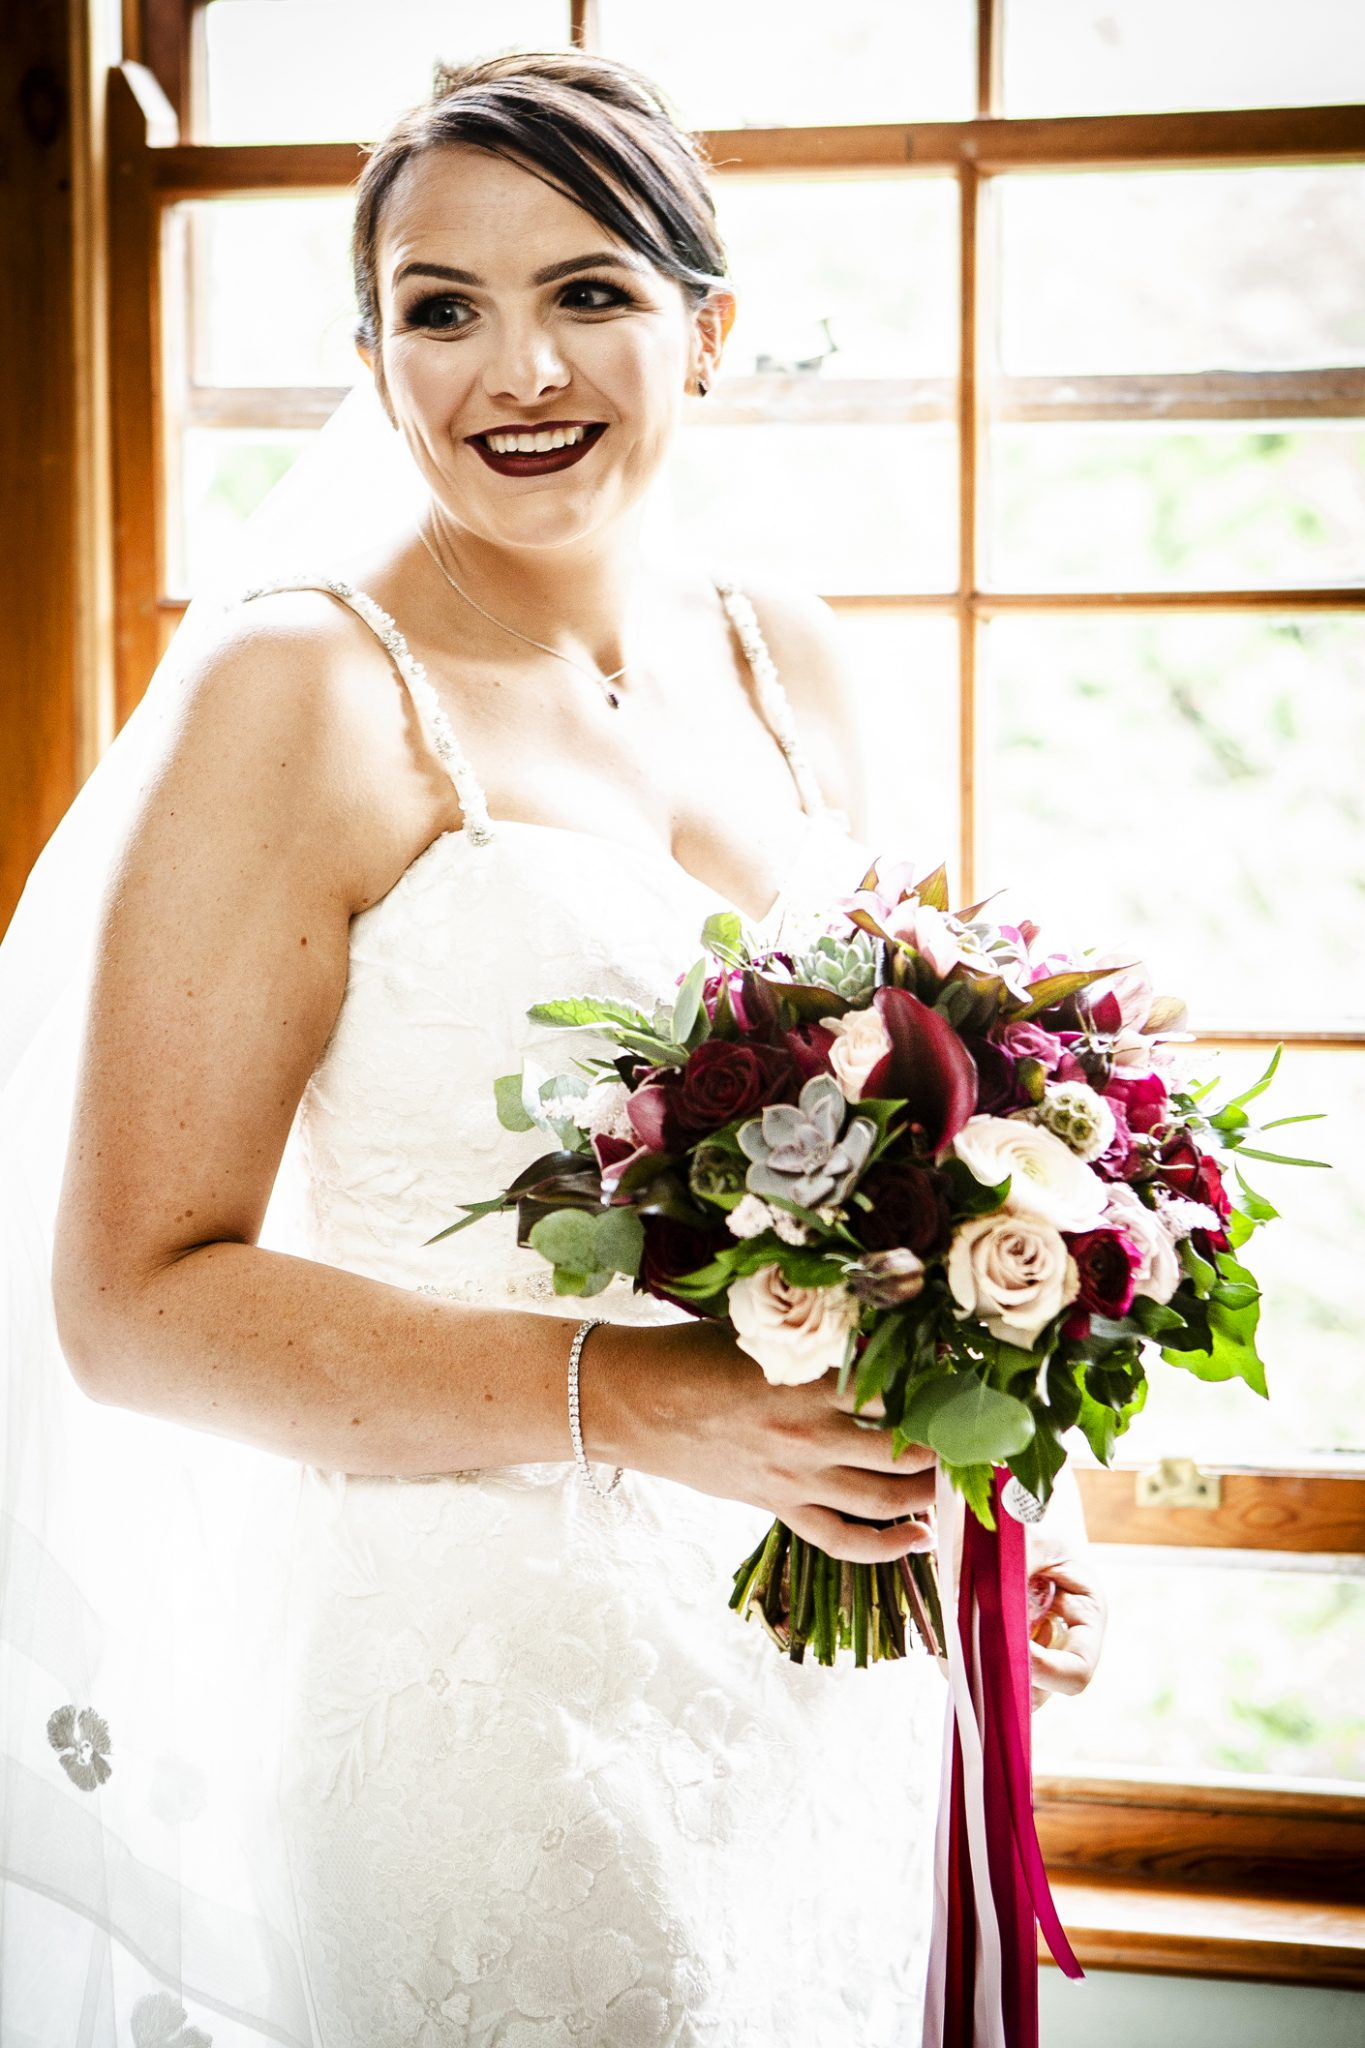 the-bride-before-the-civil-wedding-ceremony-at-nunsmere-hall-in-northwich-cheshire